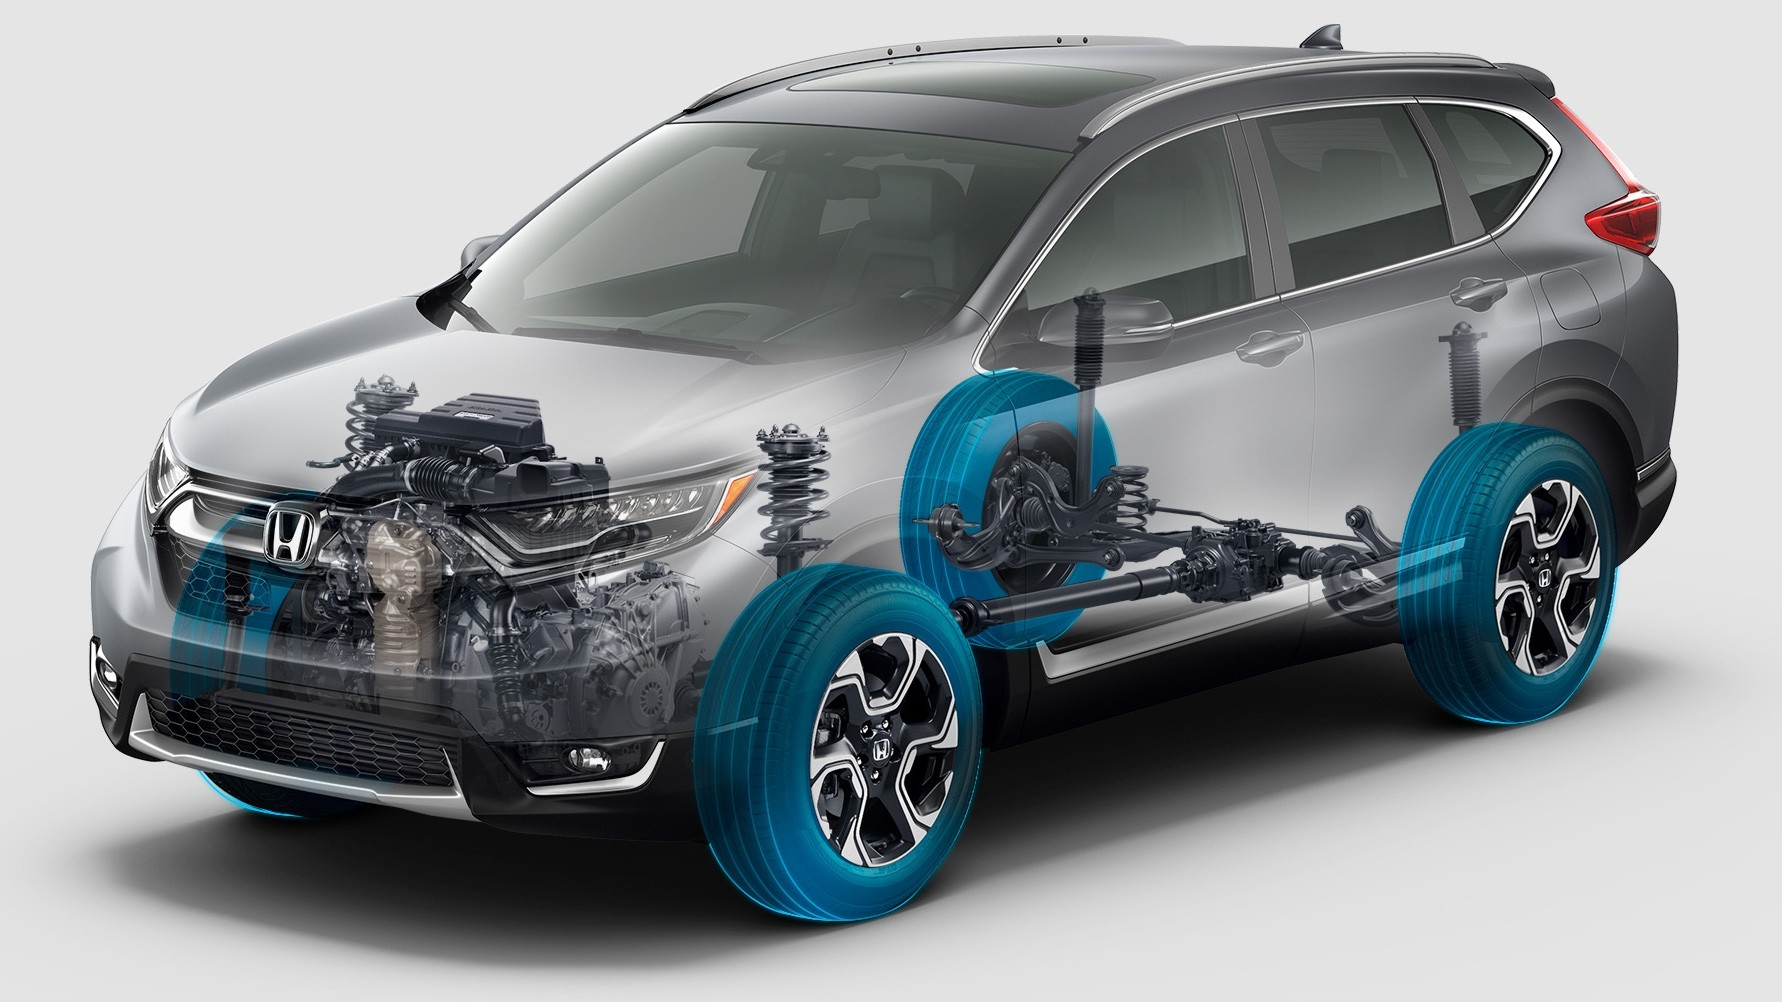 Transparent Side View of the 2017 Honda CR-V Showing the Suspension and the Engine